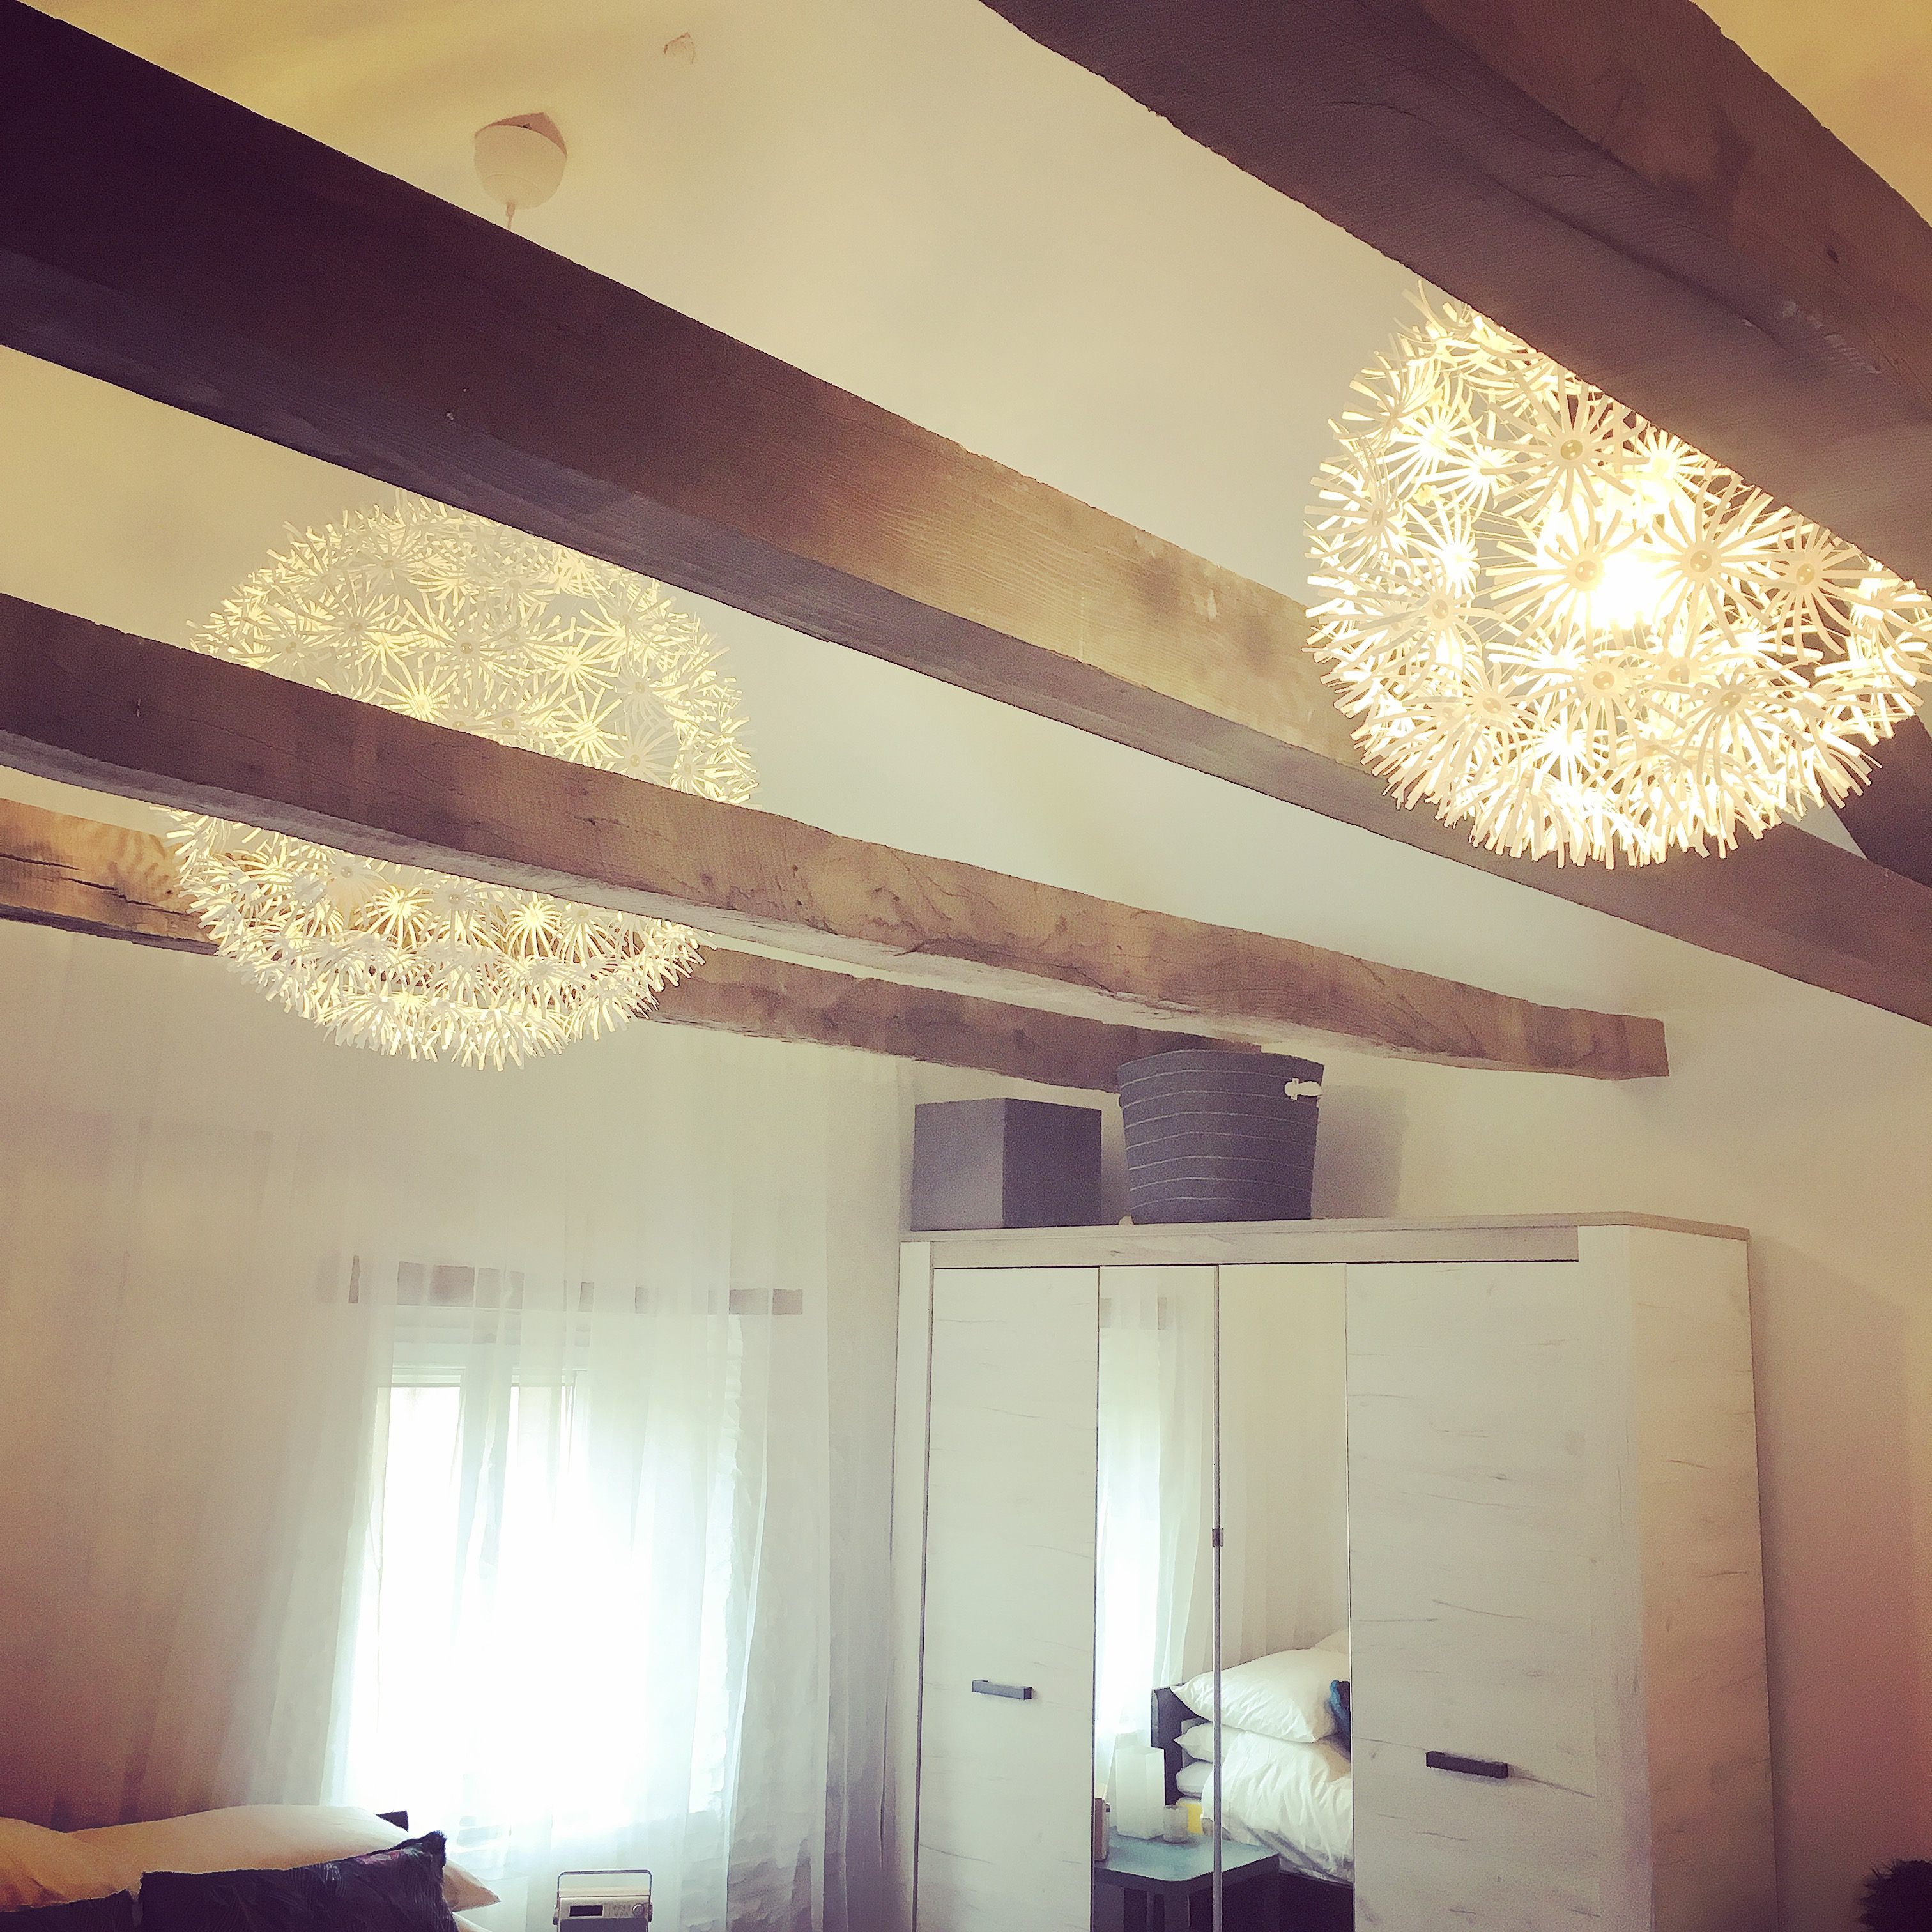 After living with bare lightbulbs for nearly a year, these IKEA shades are a joy...